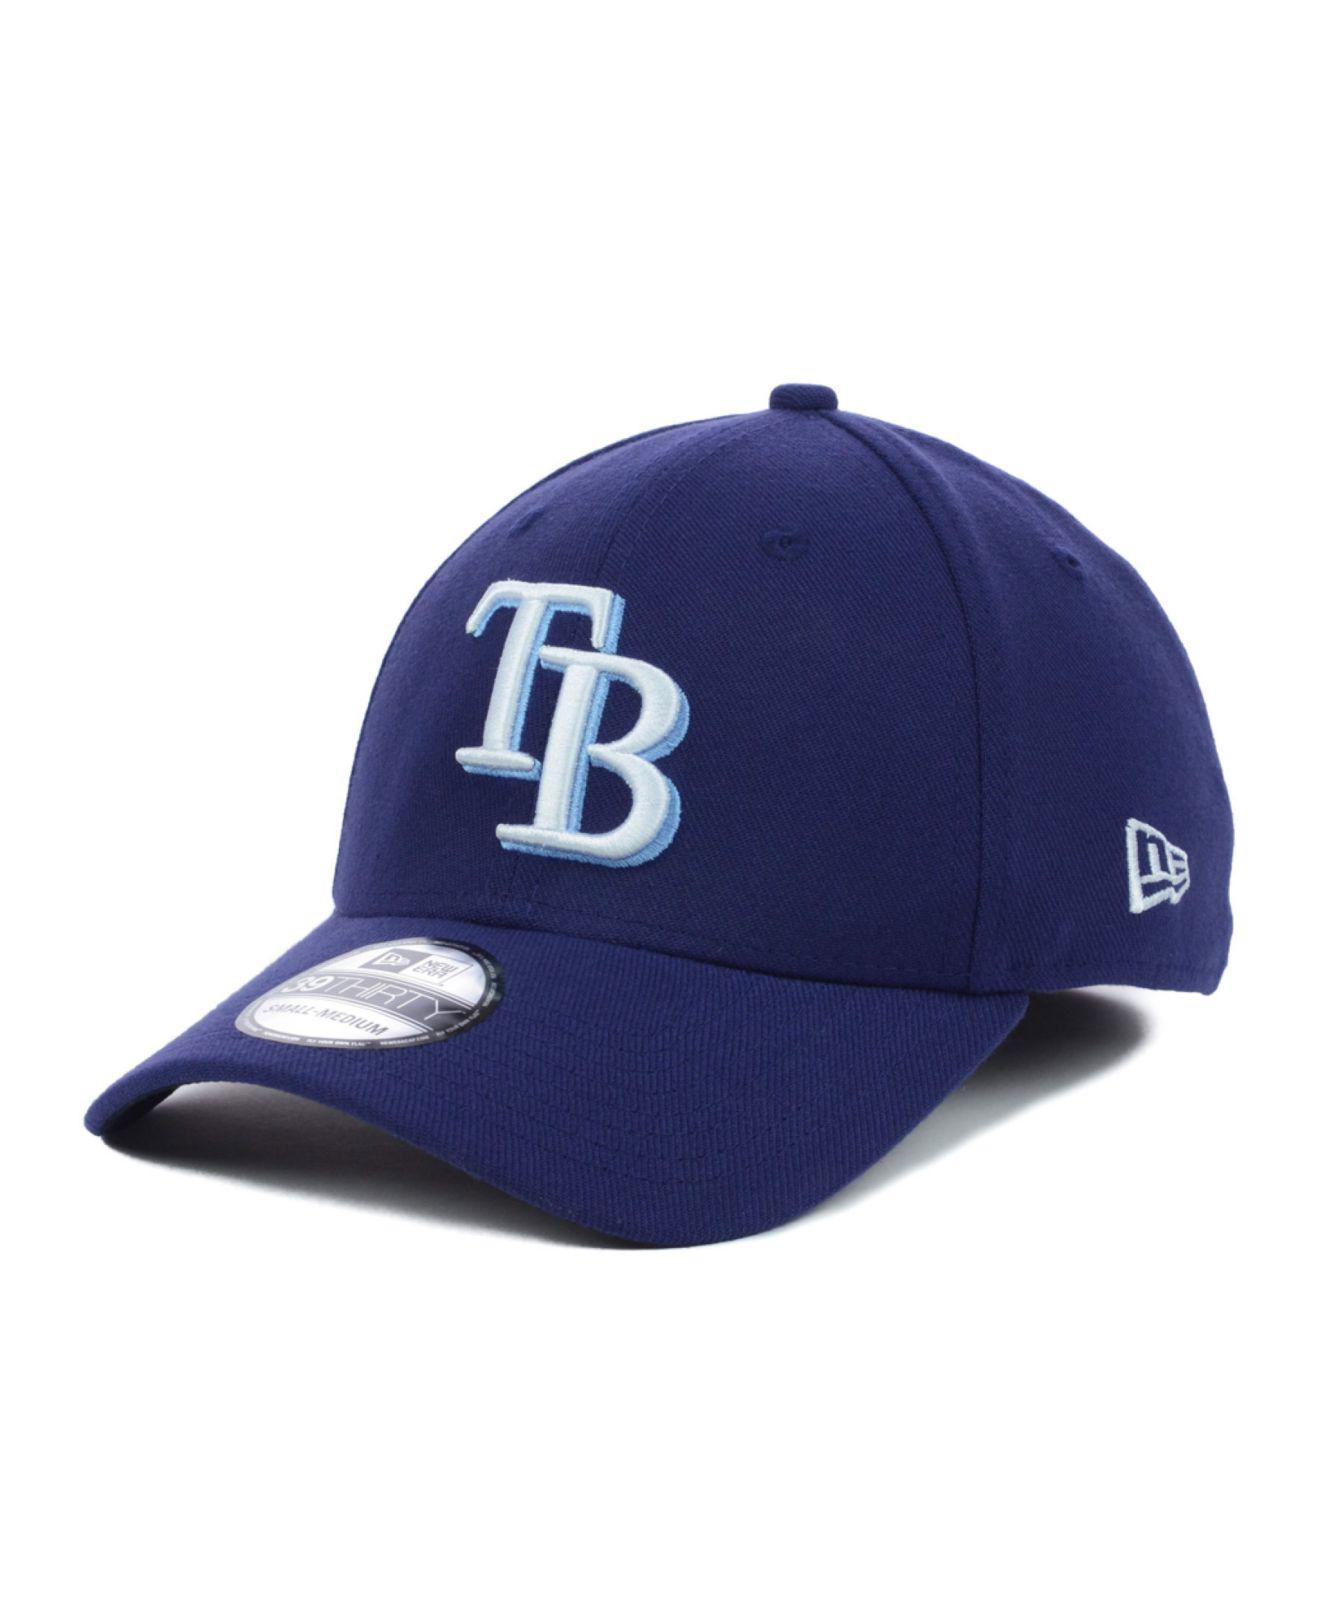 save off 8c8b9 d247b ... australia ktz. mens blue tampa bay rays mlb team classic 39thirty cap  a96d1 84522